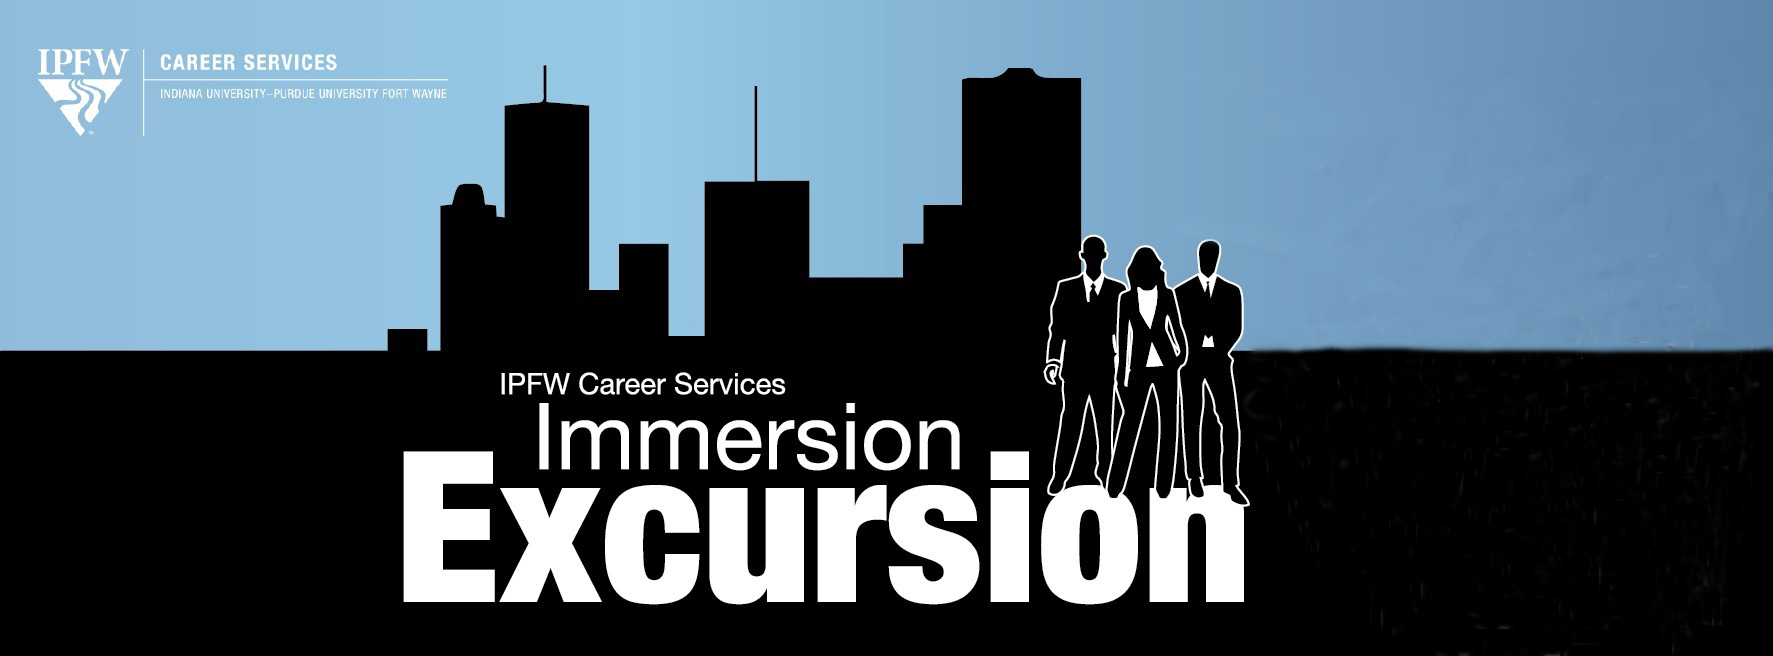 Immersion Excursion image